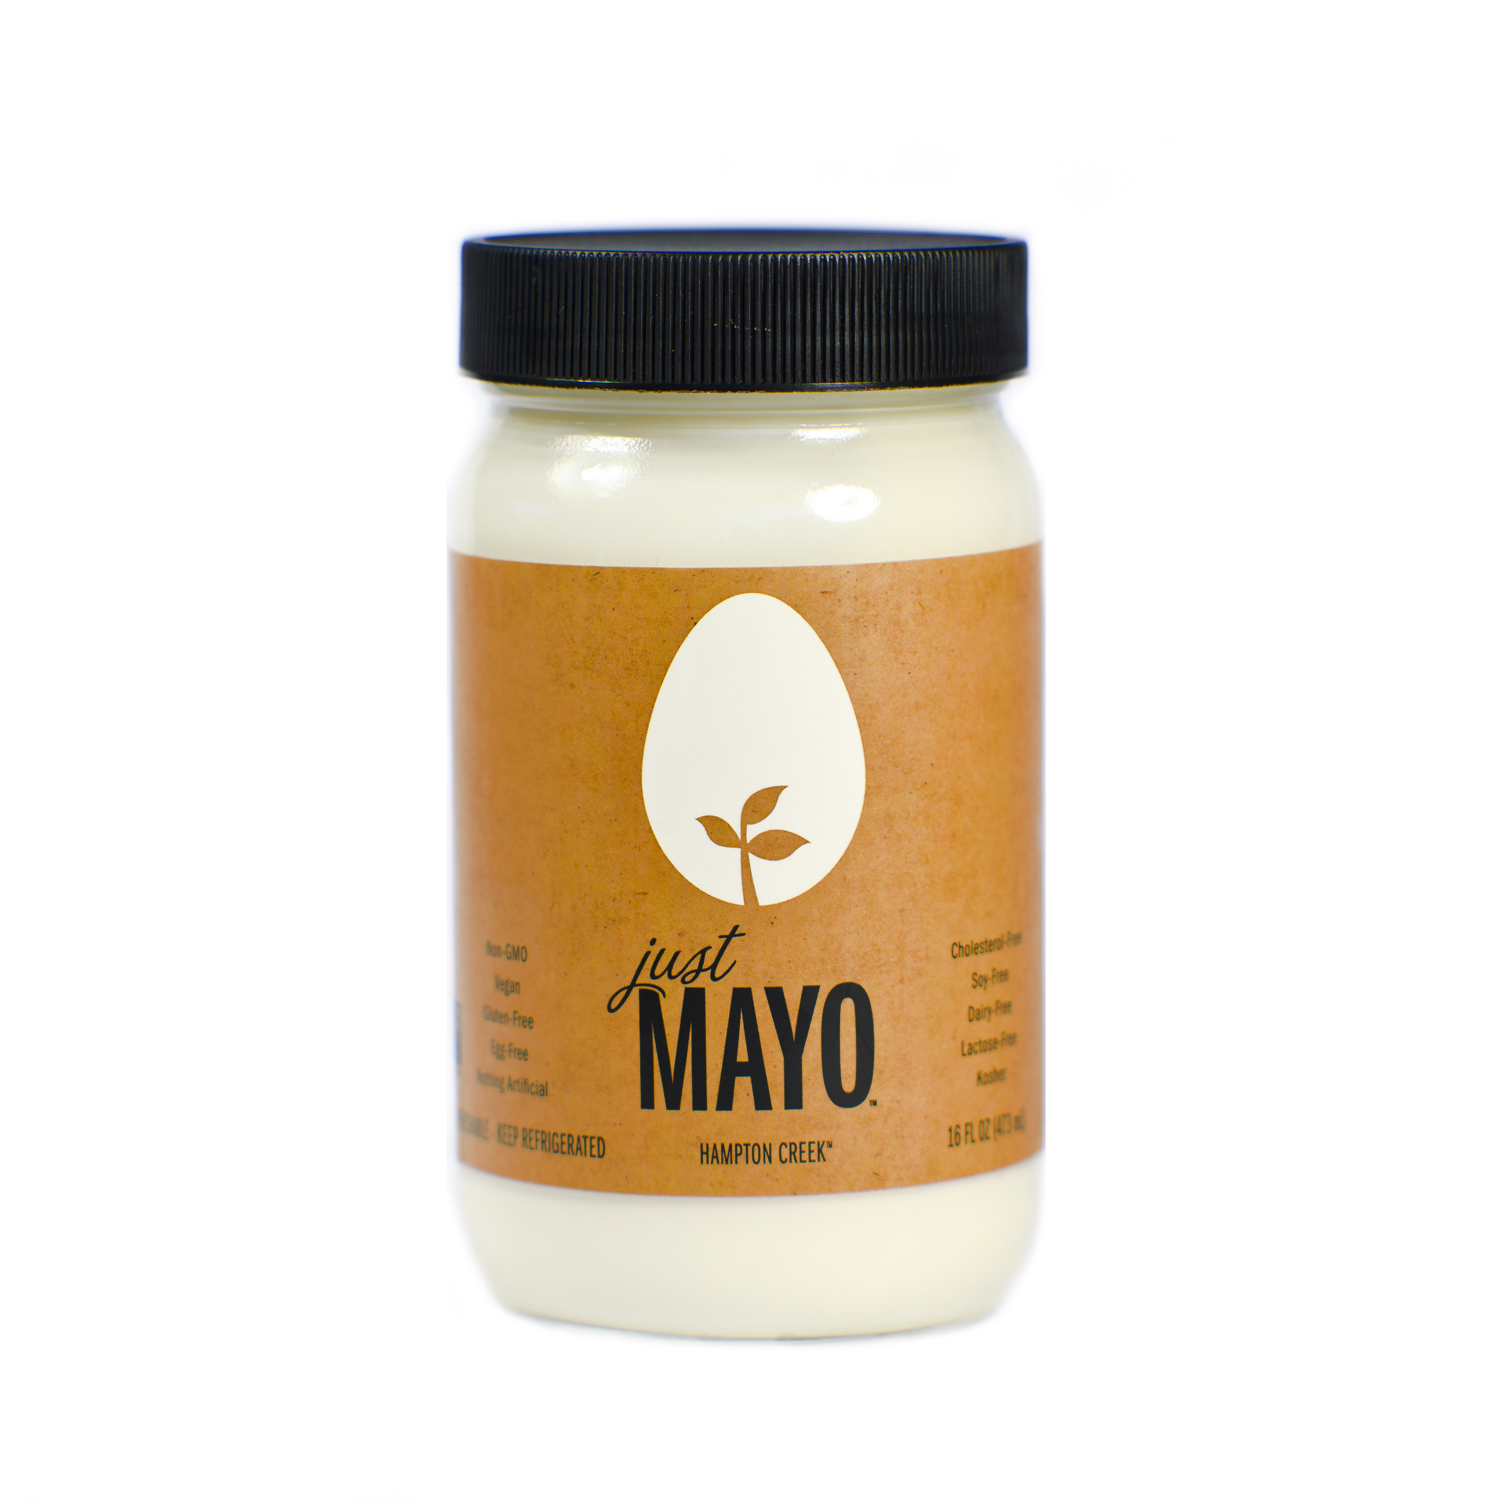 We used Hampton Creek 'Just Mayo' in our coleslaw.